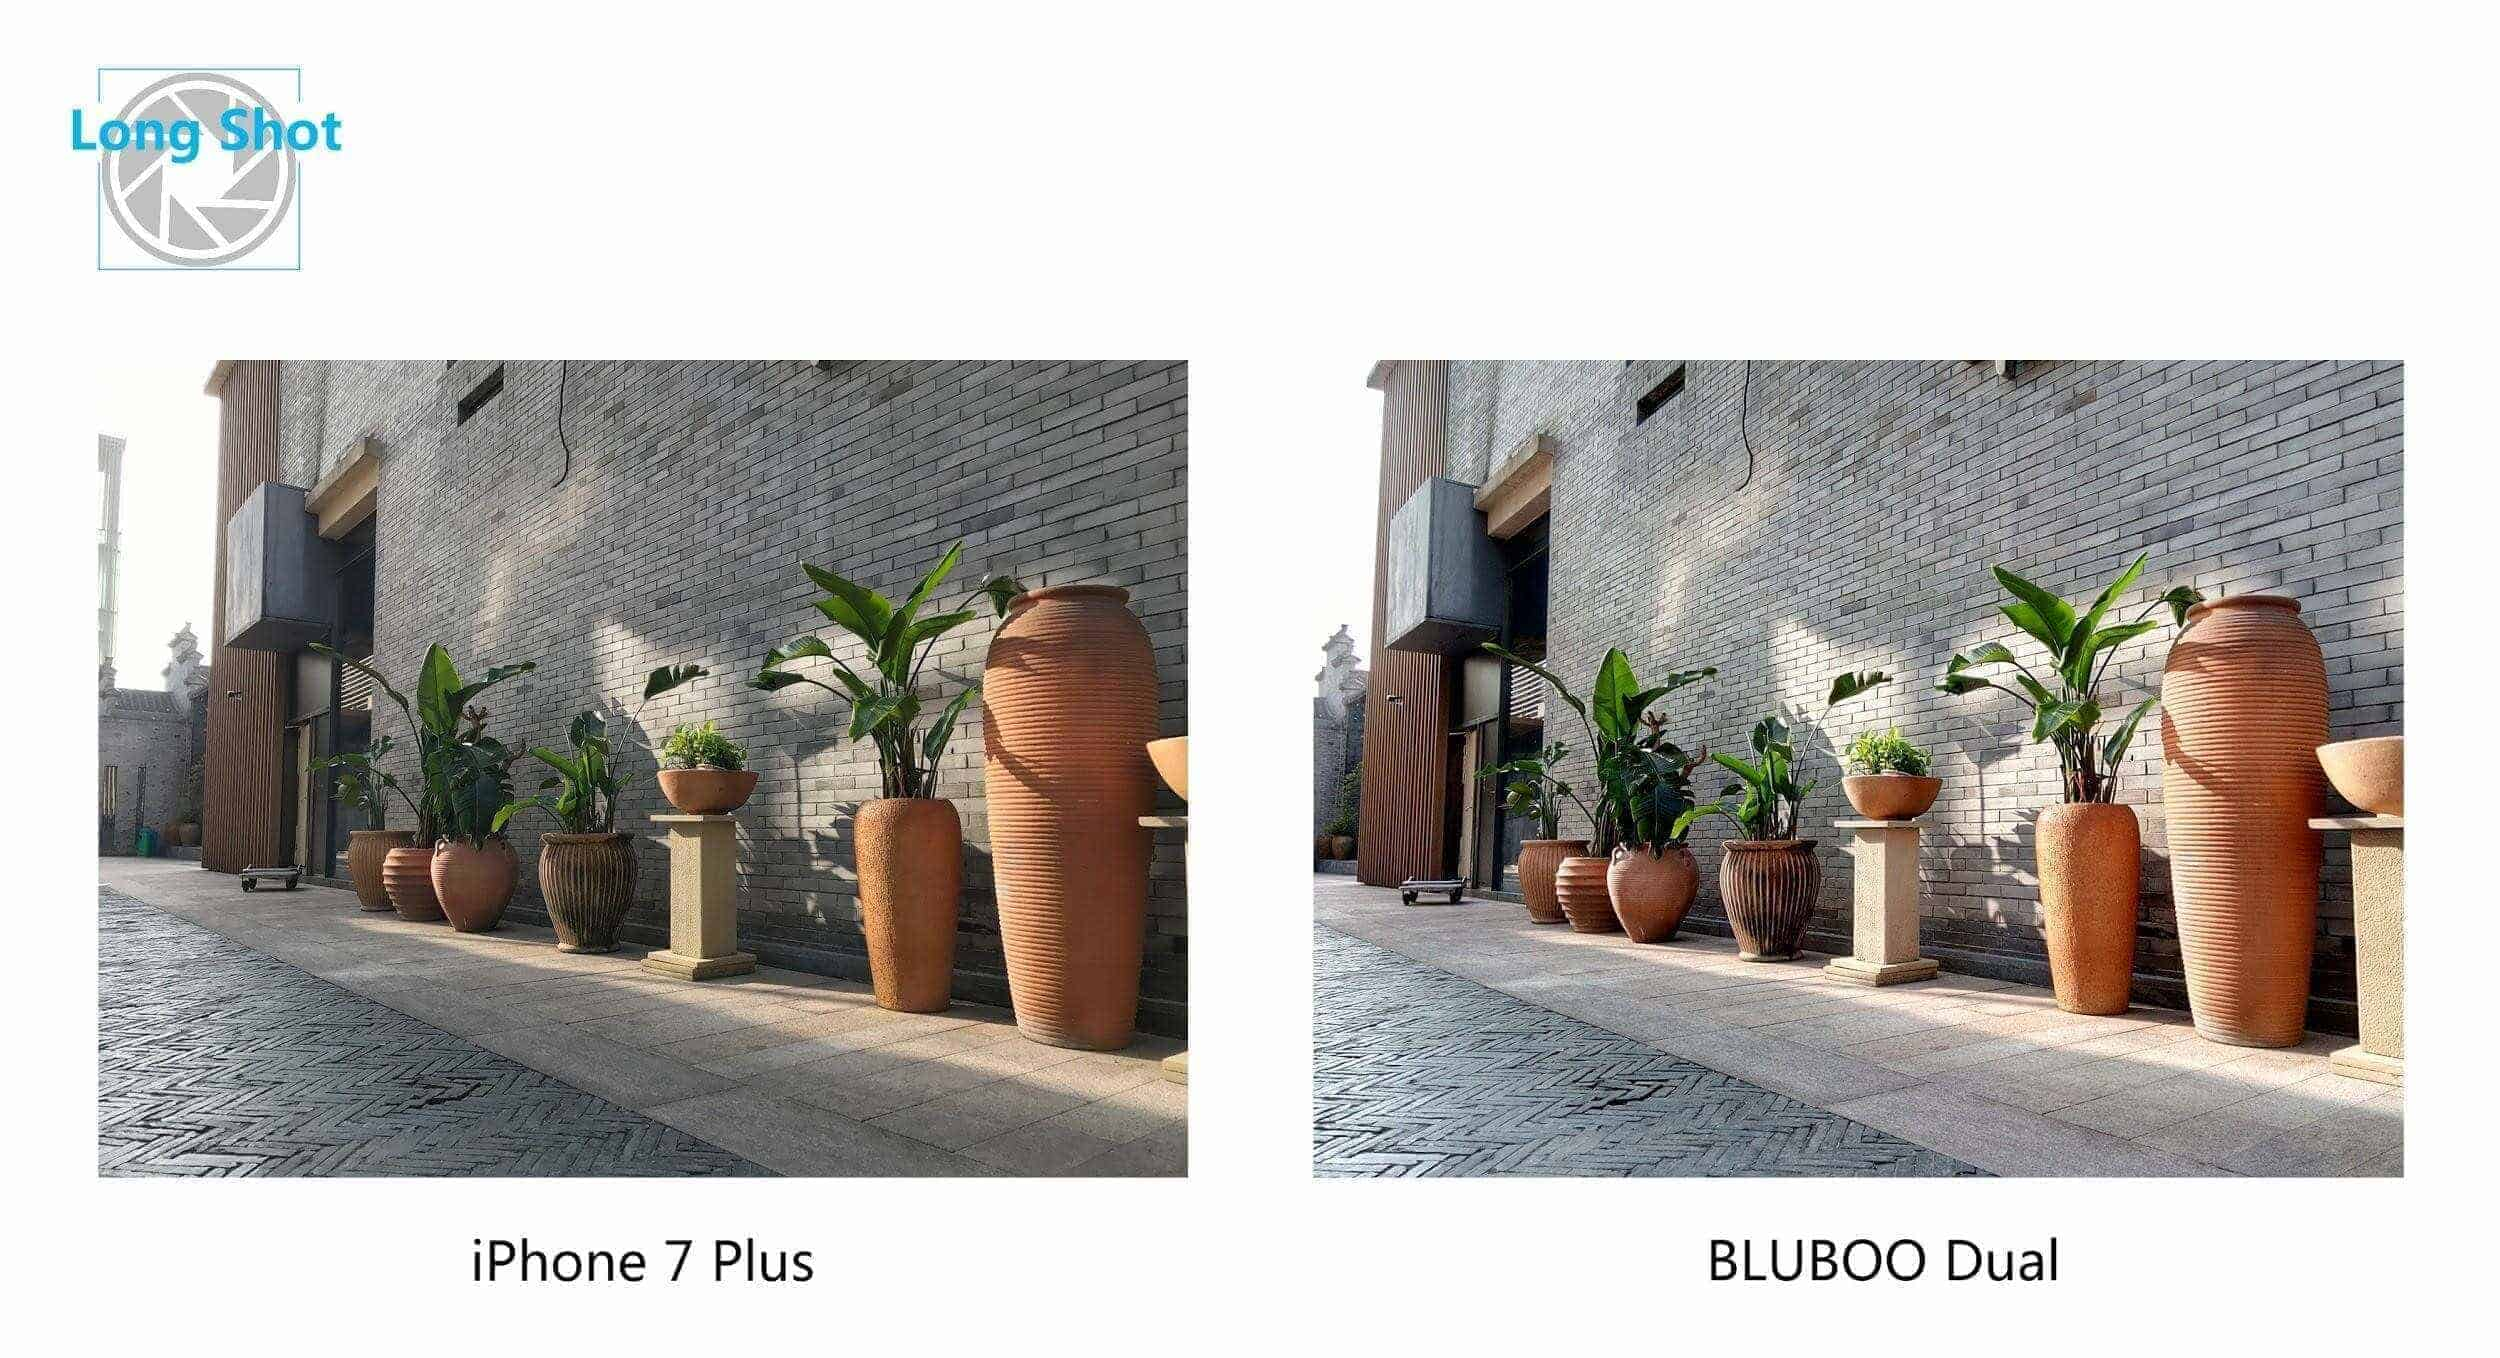 Bluboo Dual Camera Sample